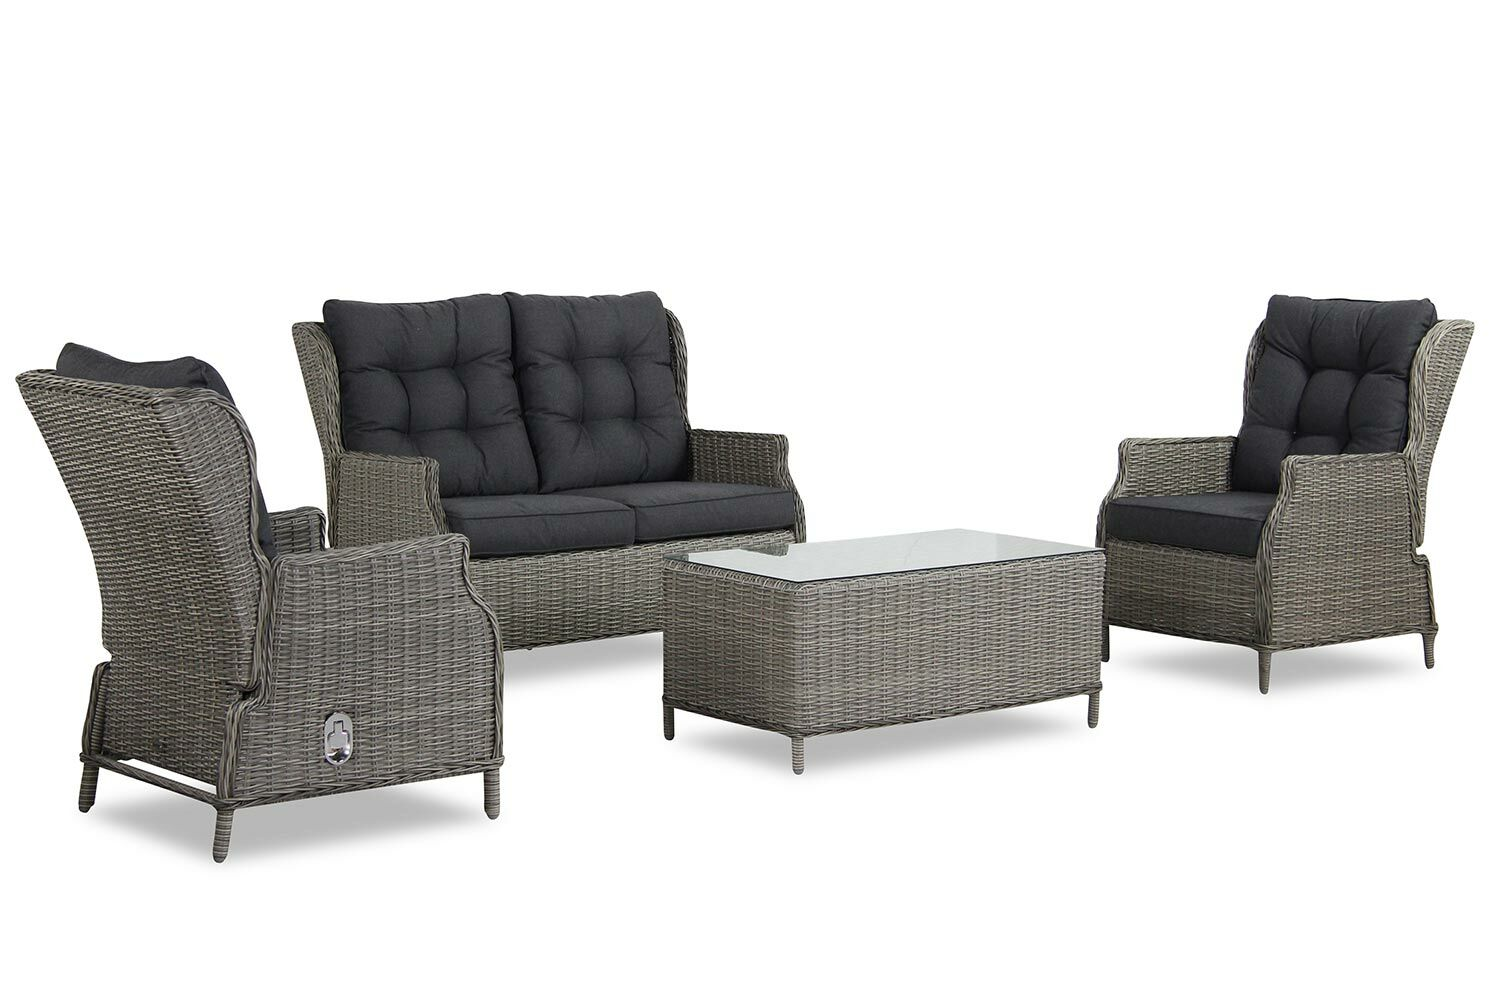 2 Stoelen En Een Bank.Garden Collections New Castle Stoel Bank Loungeset 4 Delig